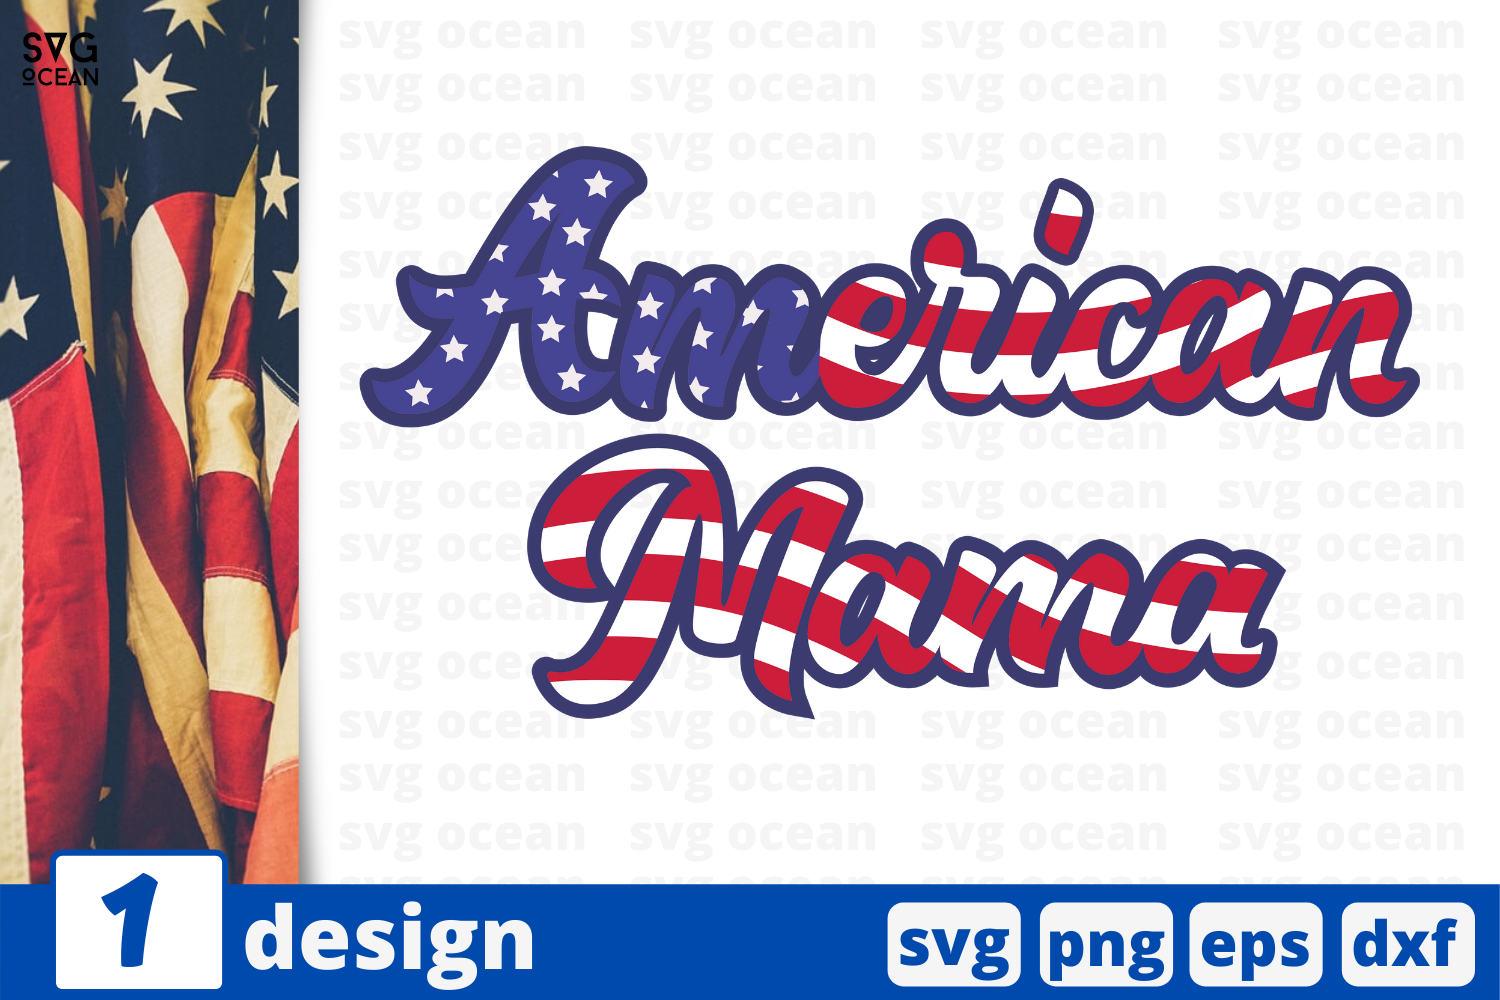 Download Free American Mama Graphic By Svgocean Creative Fabrica for Cricut Explore, Silhouette and other cutting machines.